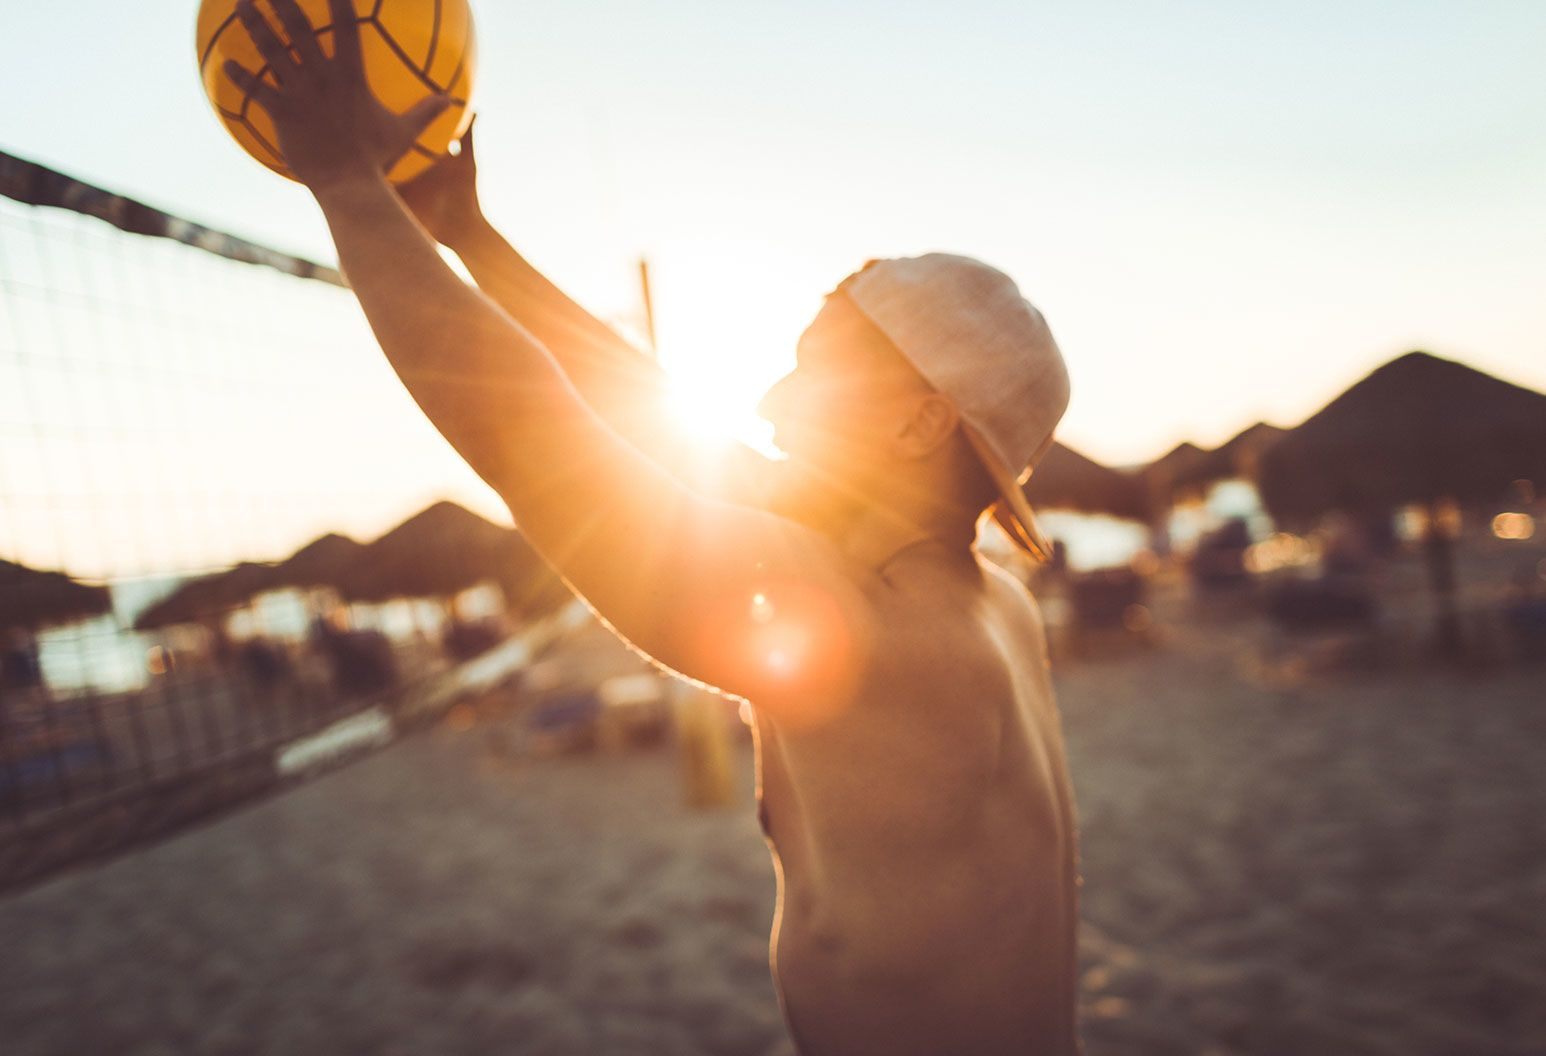 A shirtless man with a cap on backwards is playing beach volleyball as there's a golden sun setting in the background.